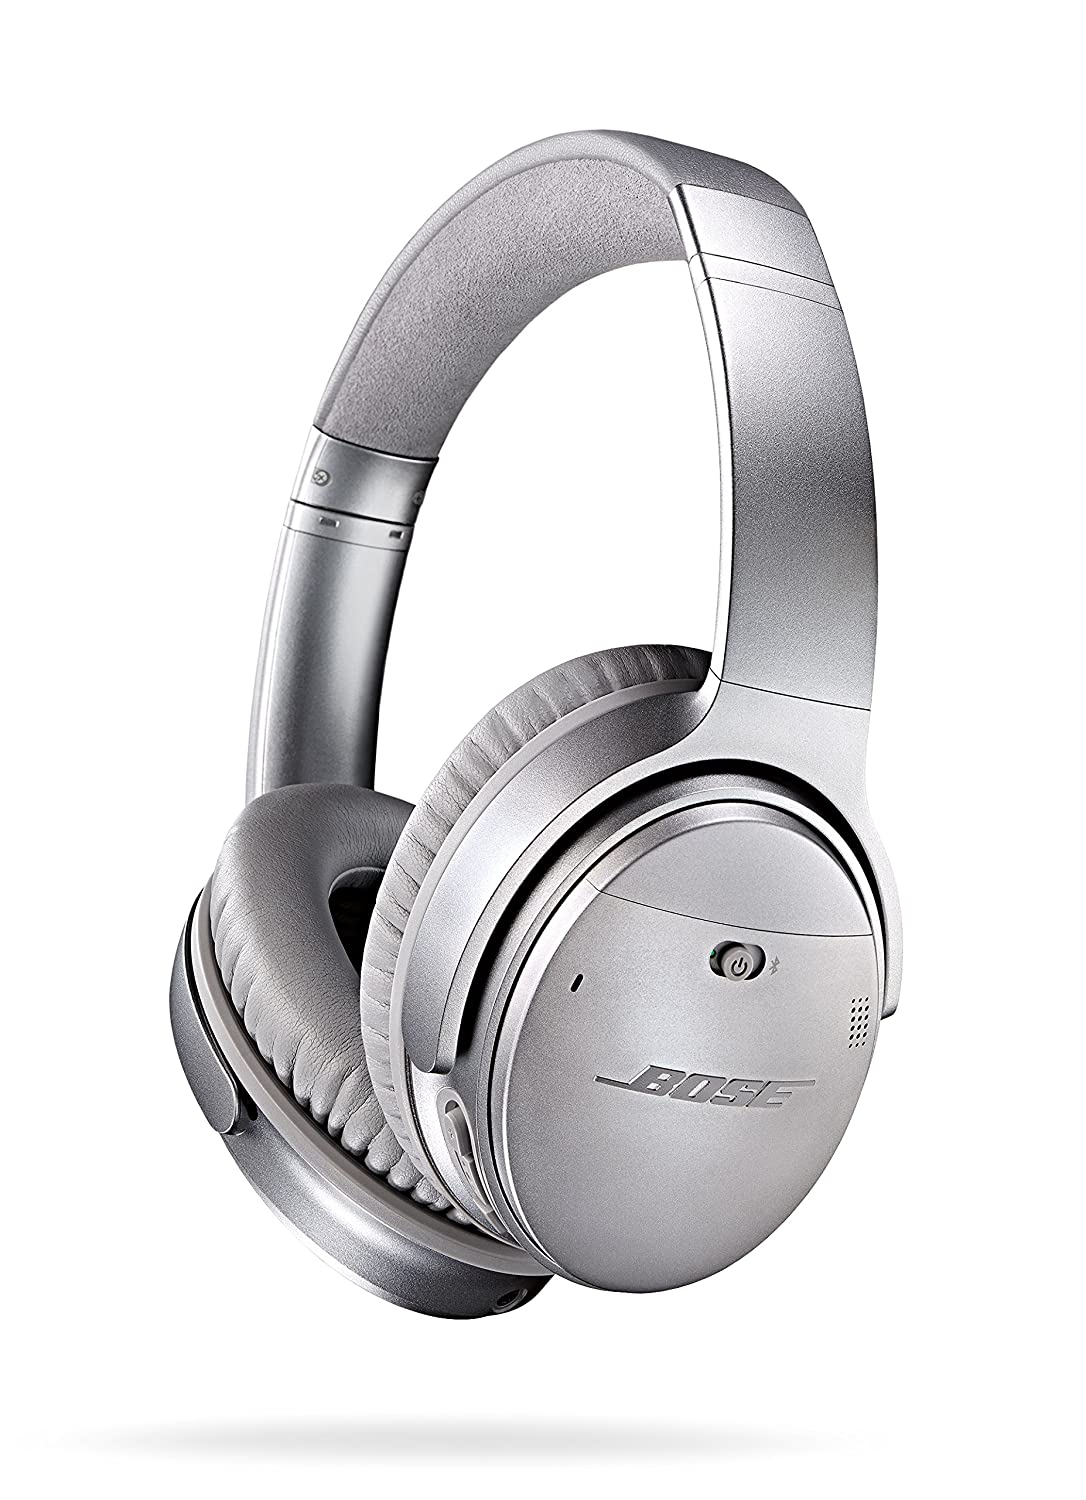 Bose Wireless Noise-Canceling Headphones